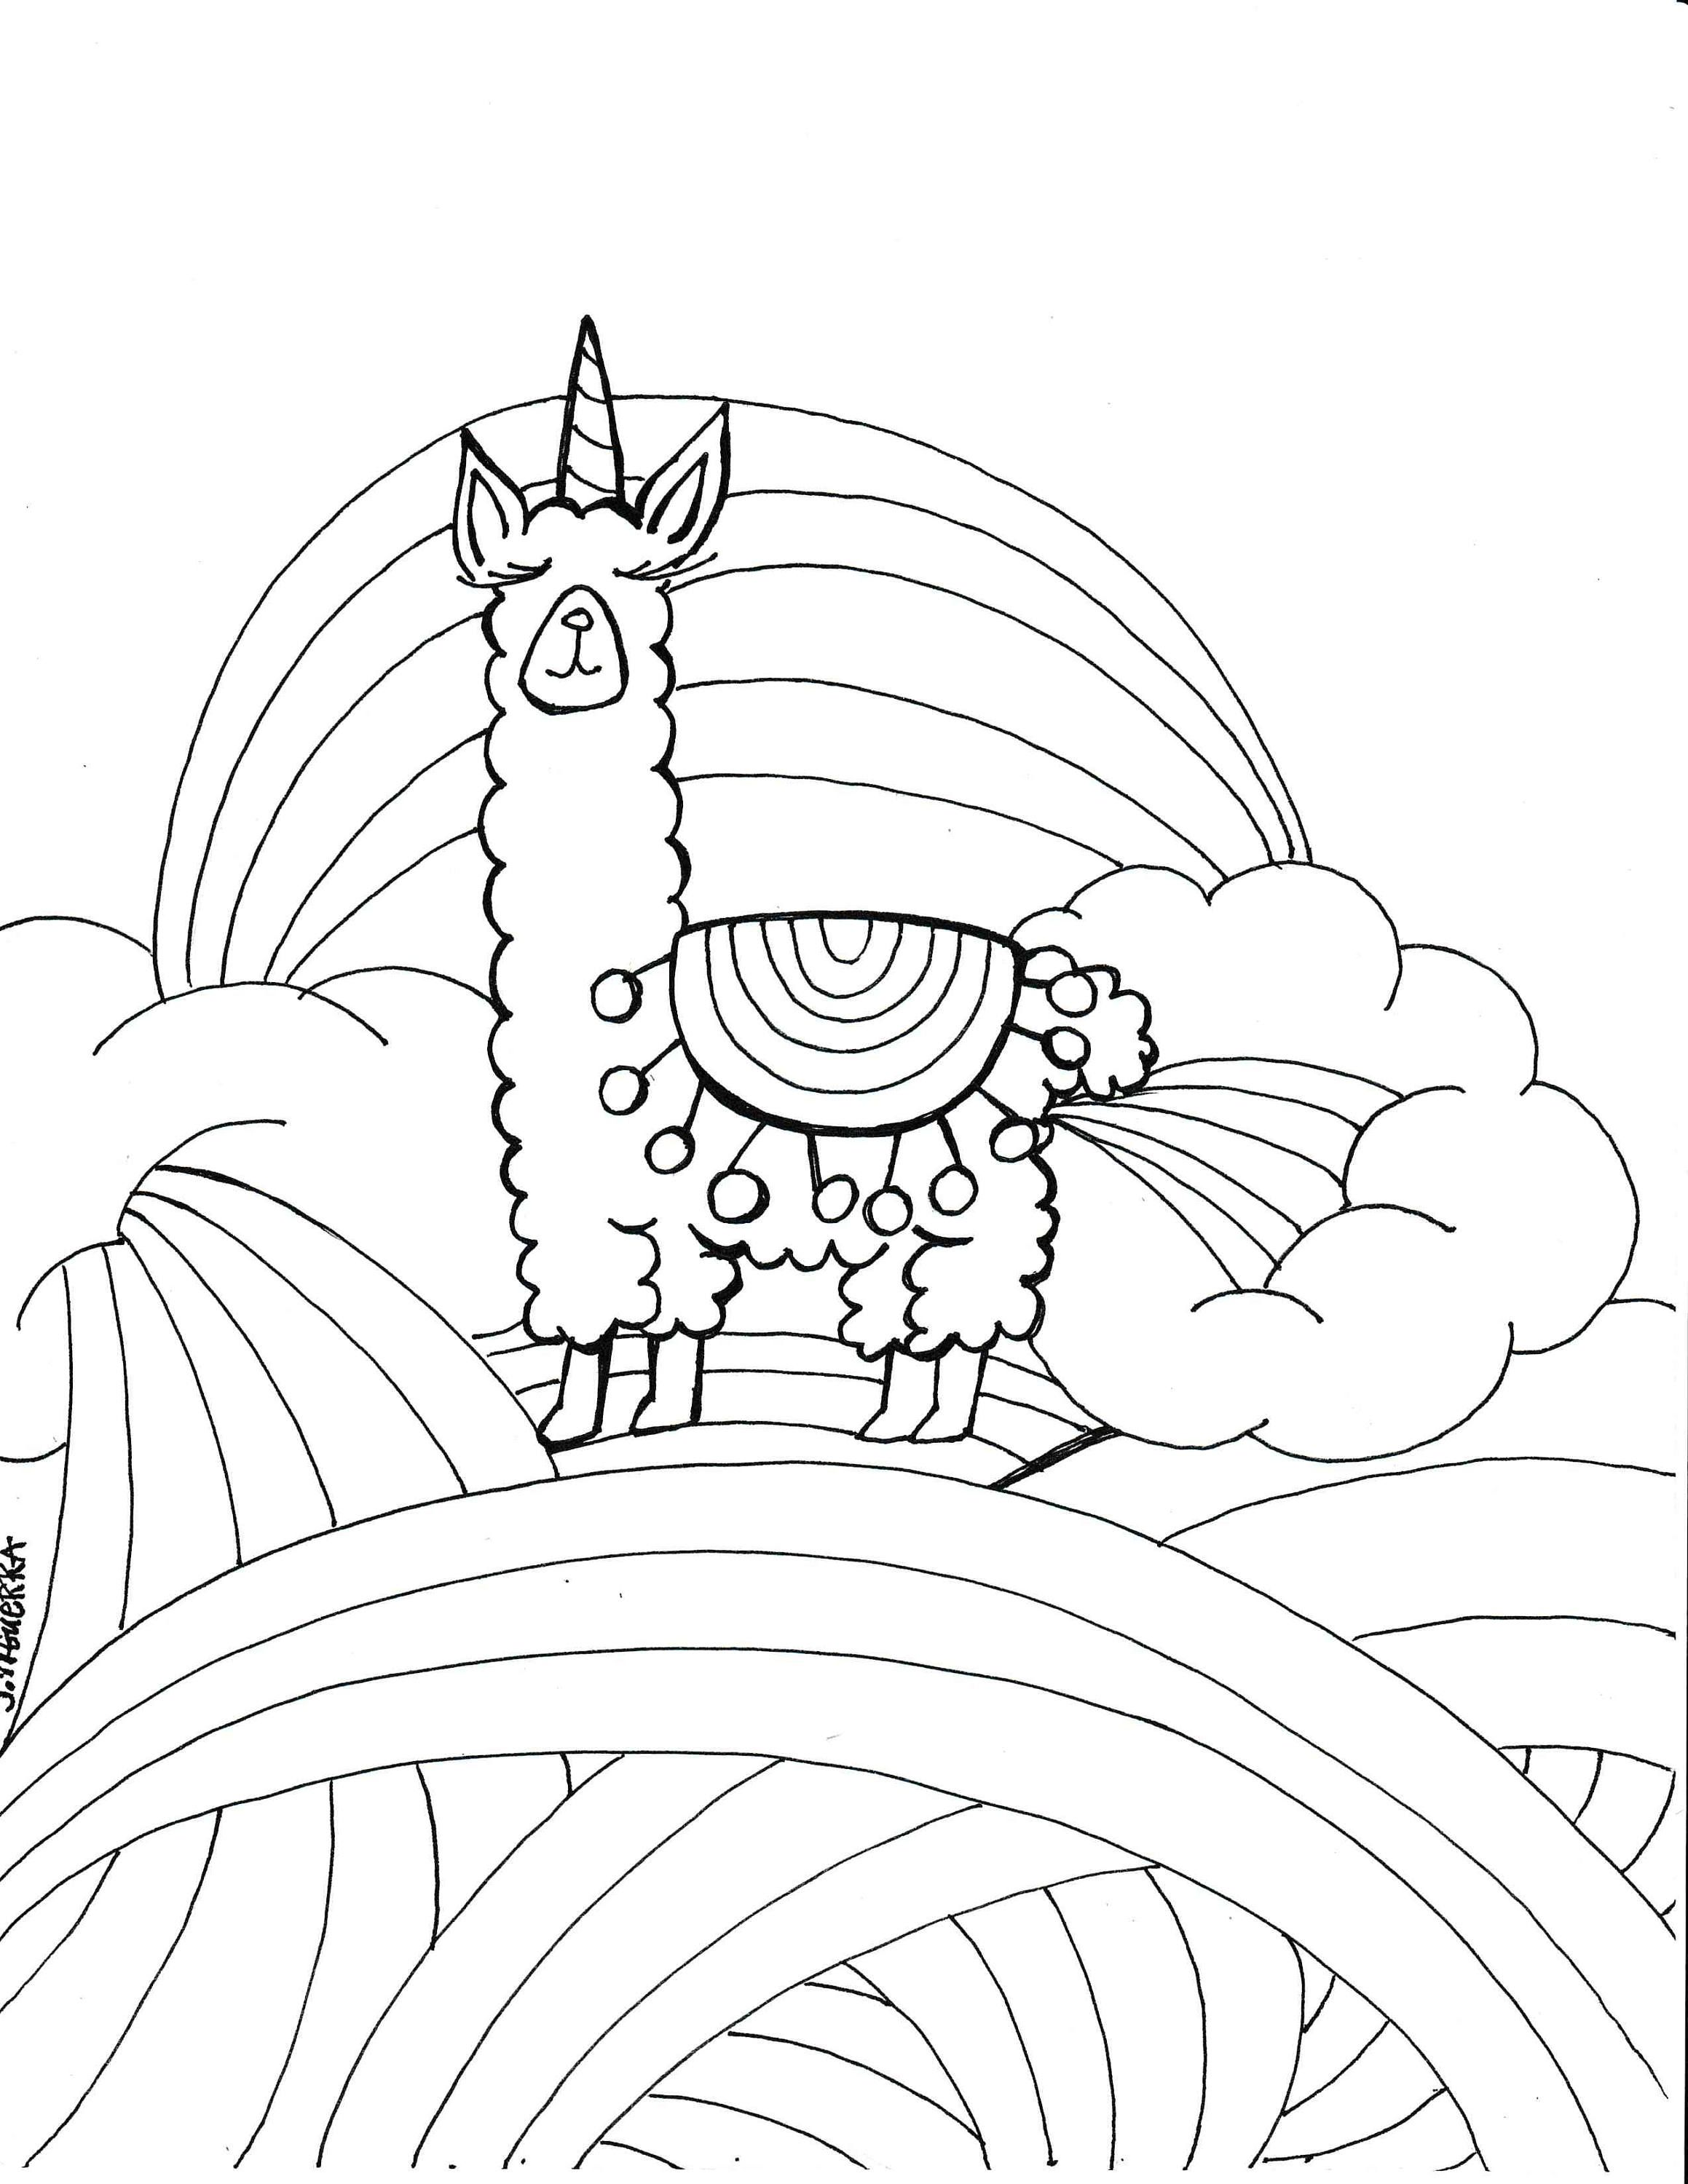 Llamacorn coloring page PDF printable art | Printable art, Pdf and Etsy